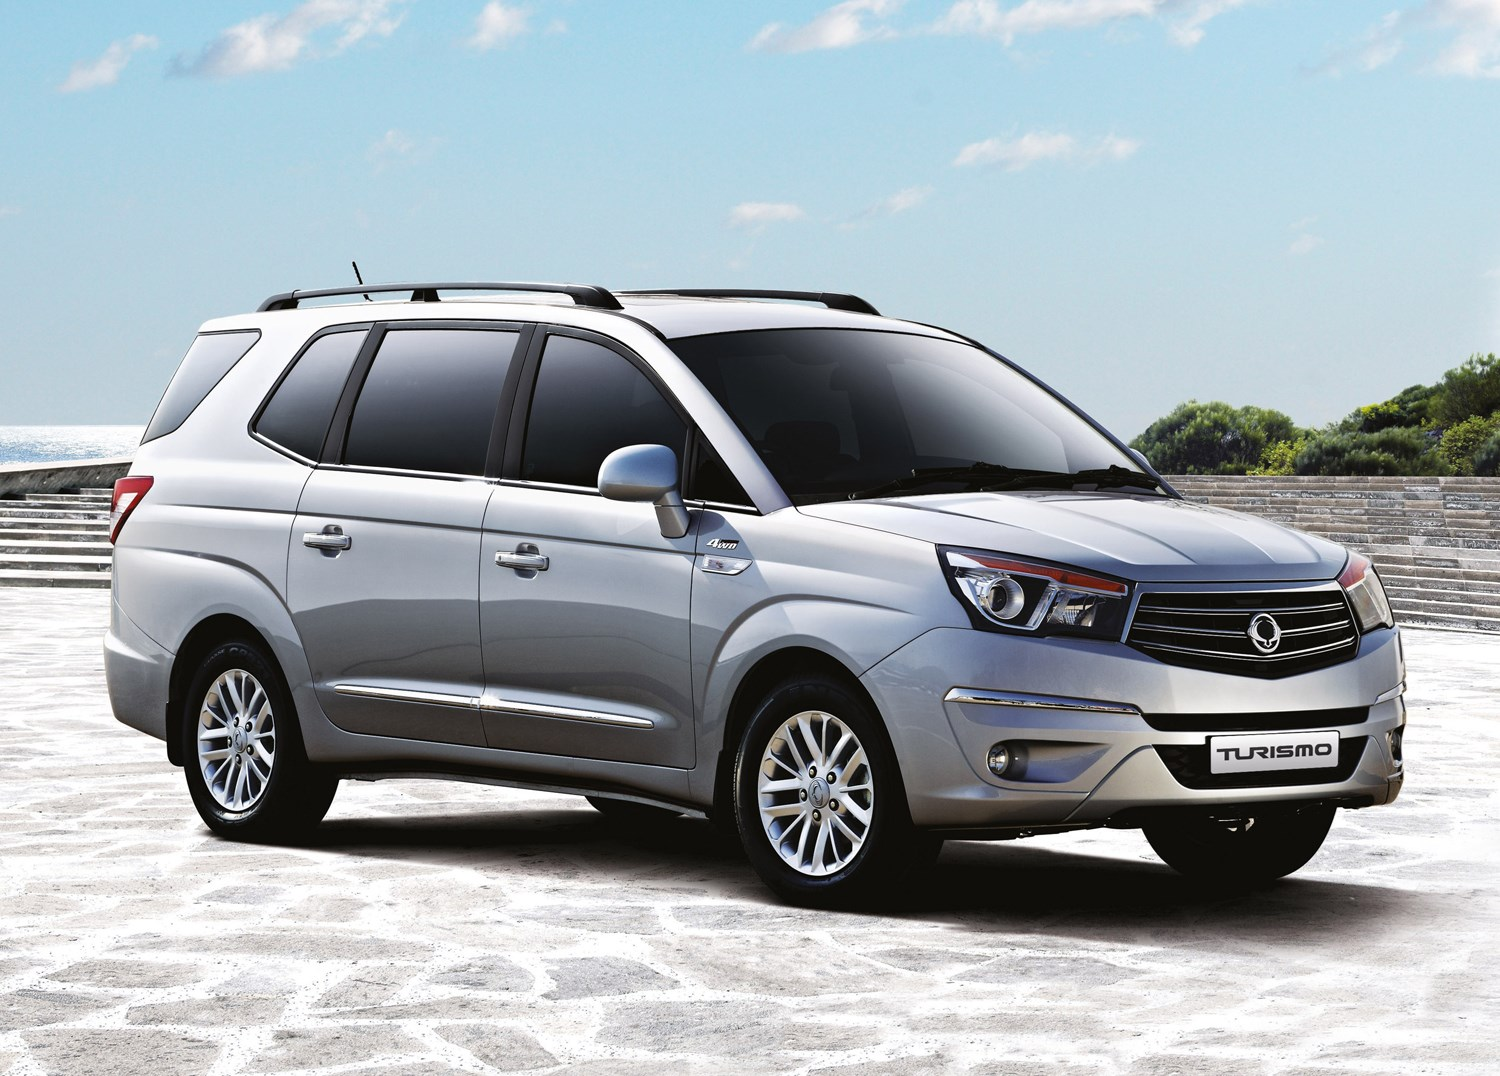 SsangYong Turismo Estate (2013 - ) Photos | Parkers